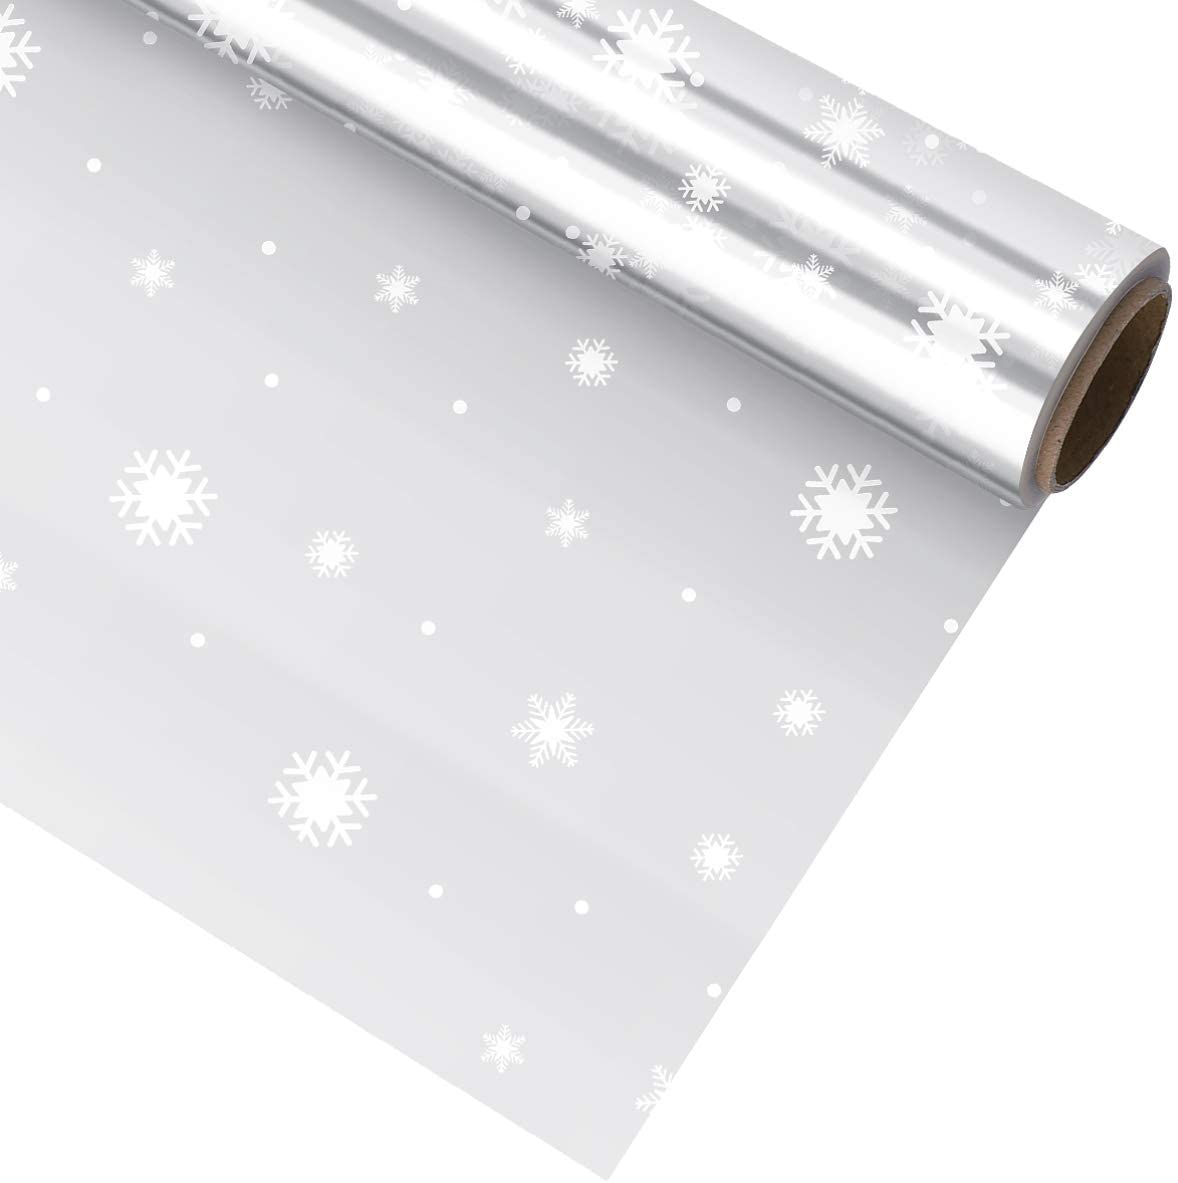 NUOBESTY Snowflake Cellophane Wrap Roll Christmas Wrap Paper, 3 Mil Thickness 3000x80cm, for Xmas Gift Wrapping Flowers Packing Party Favor